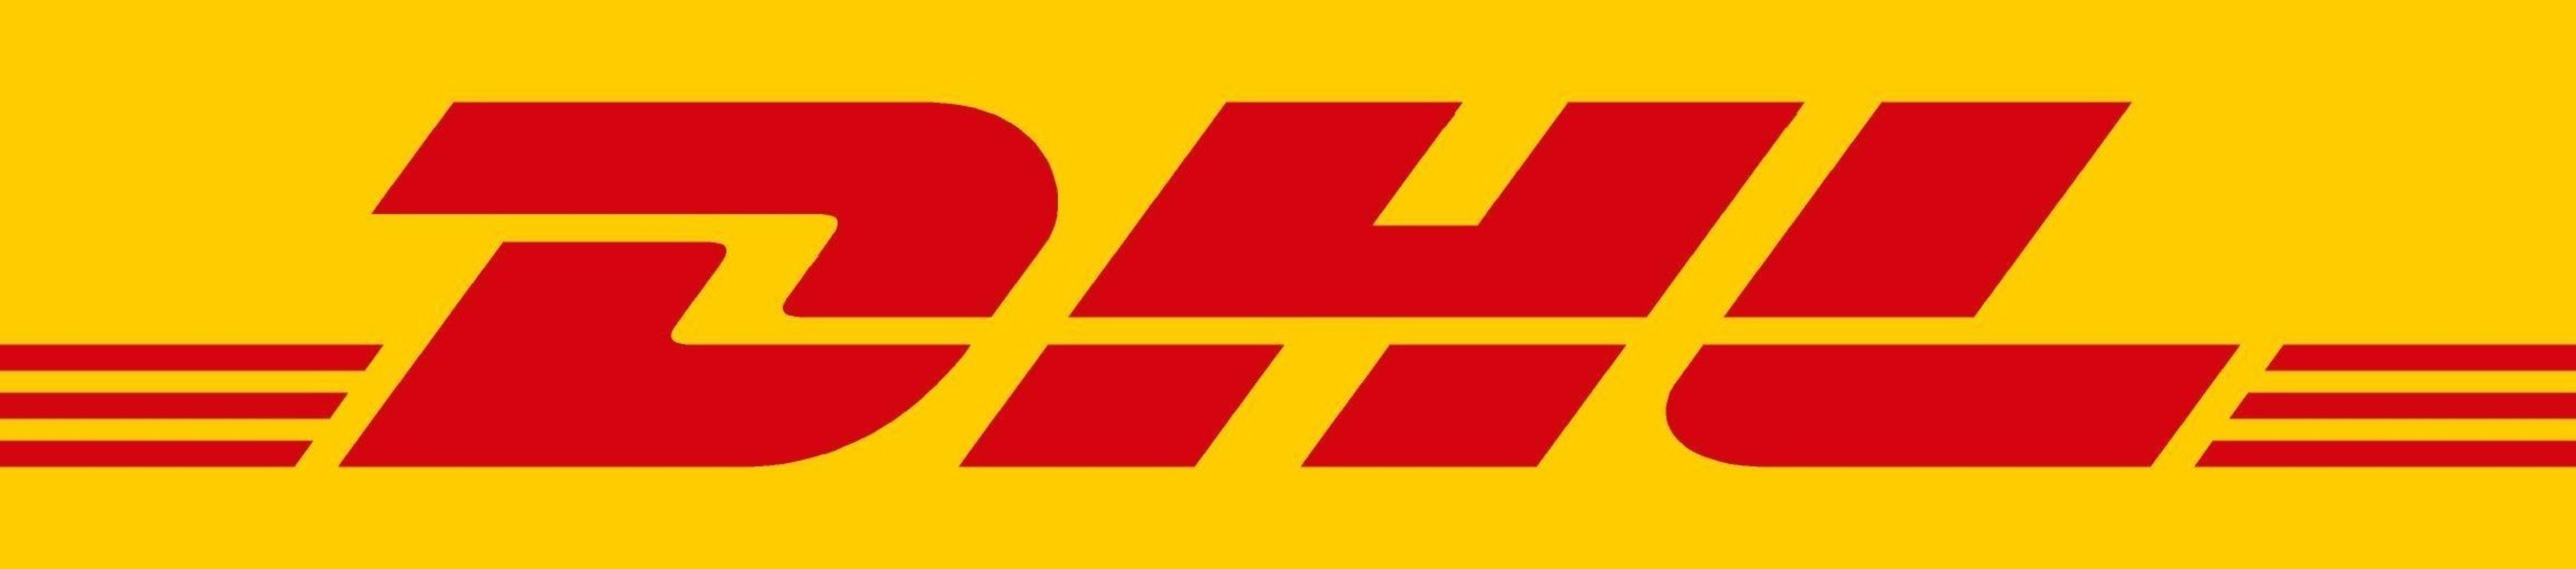 DHL Supply Chain rolls out global augmented reality program in the United States, the Netherlands and the United Kingdom